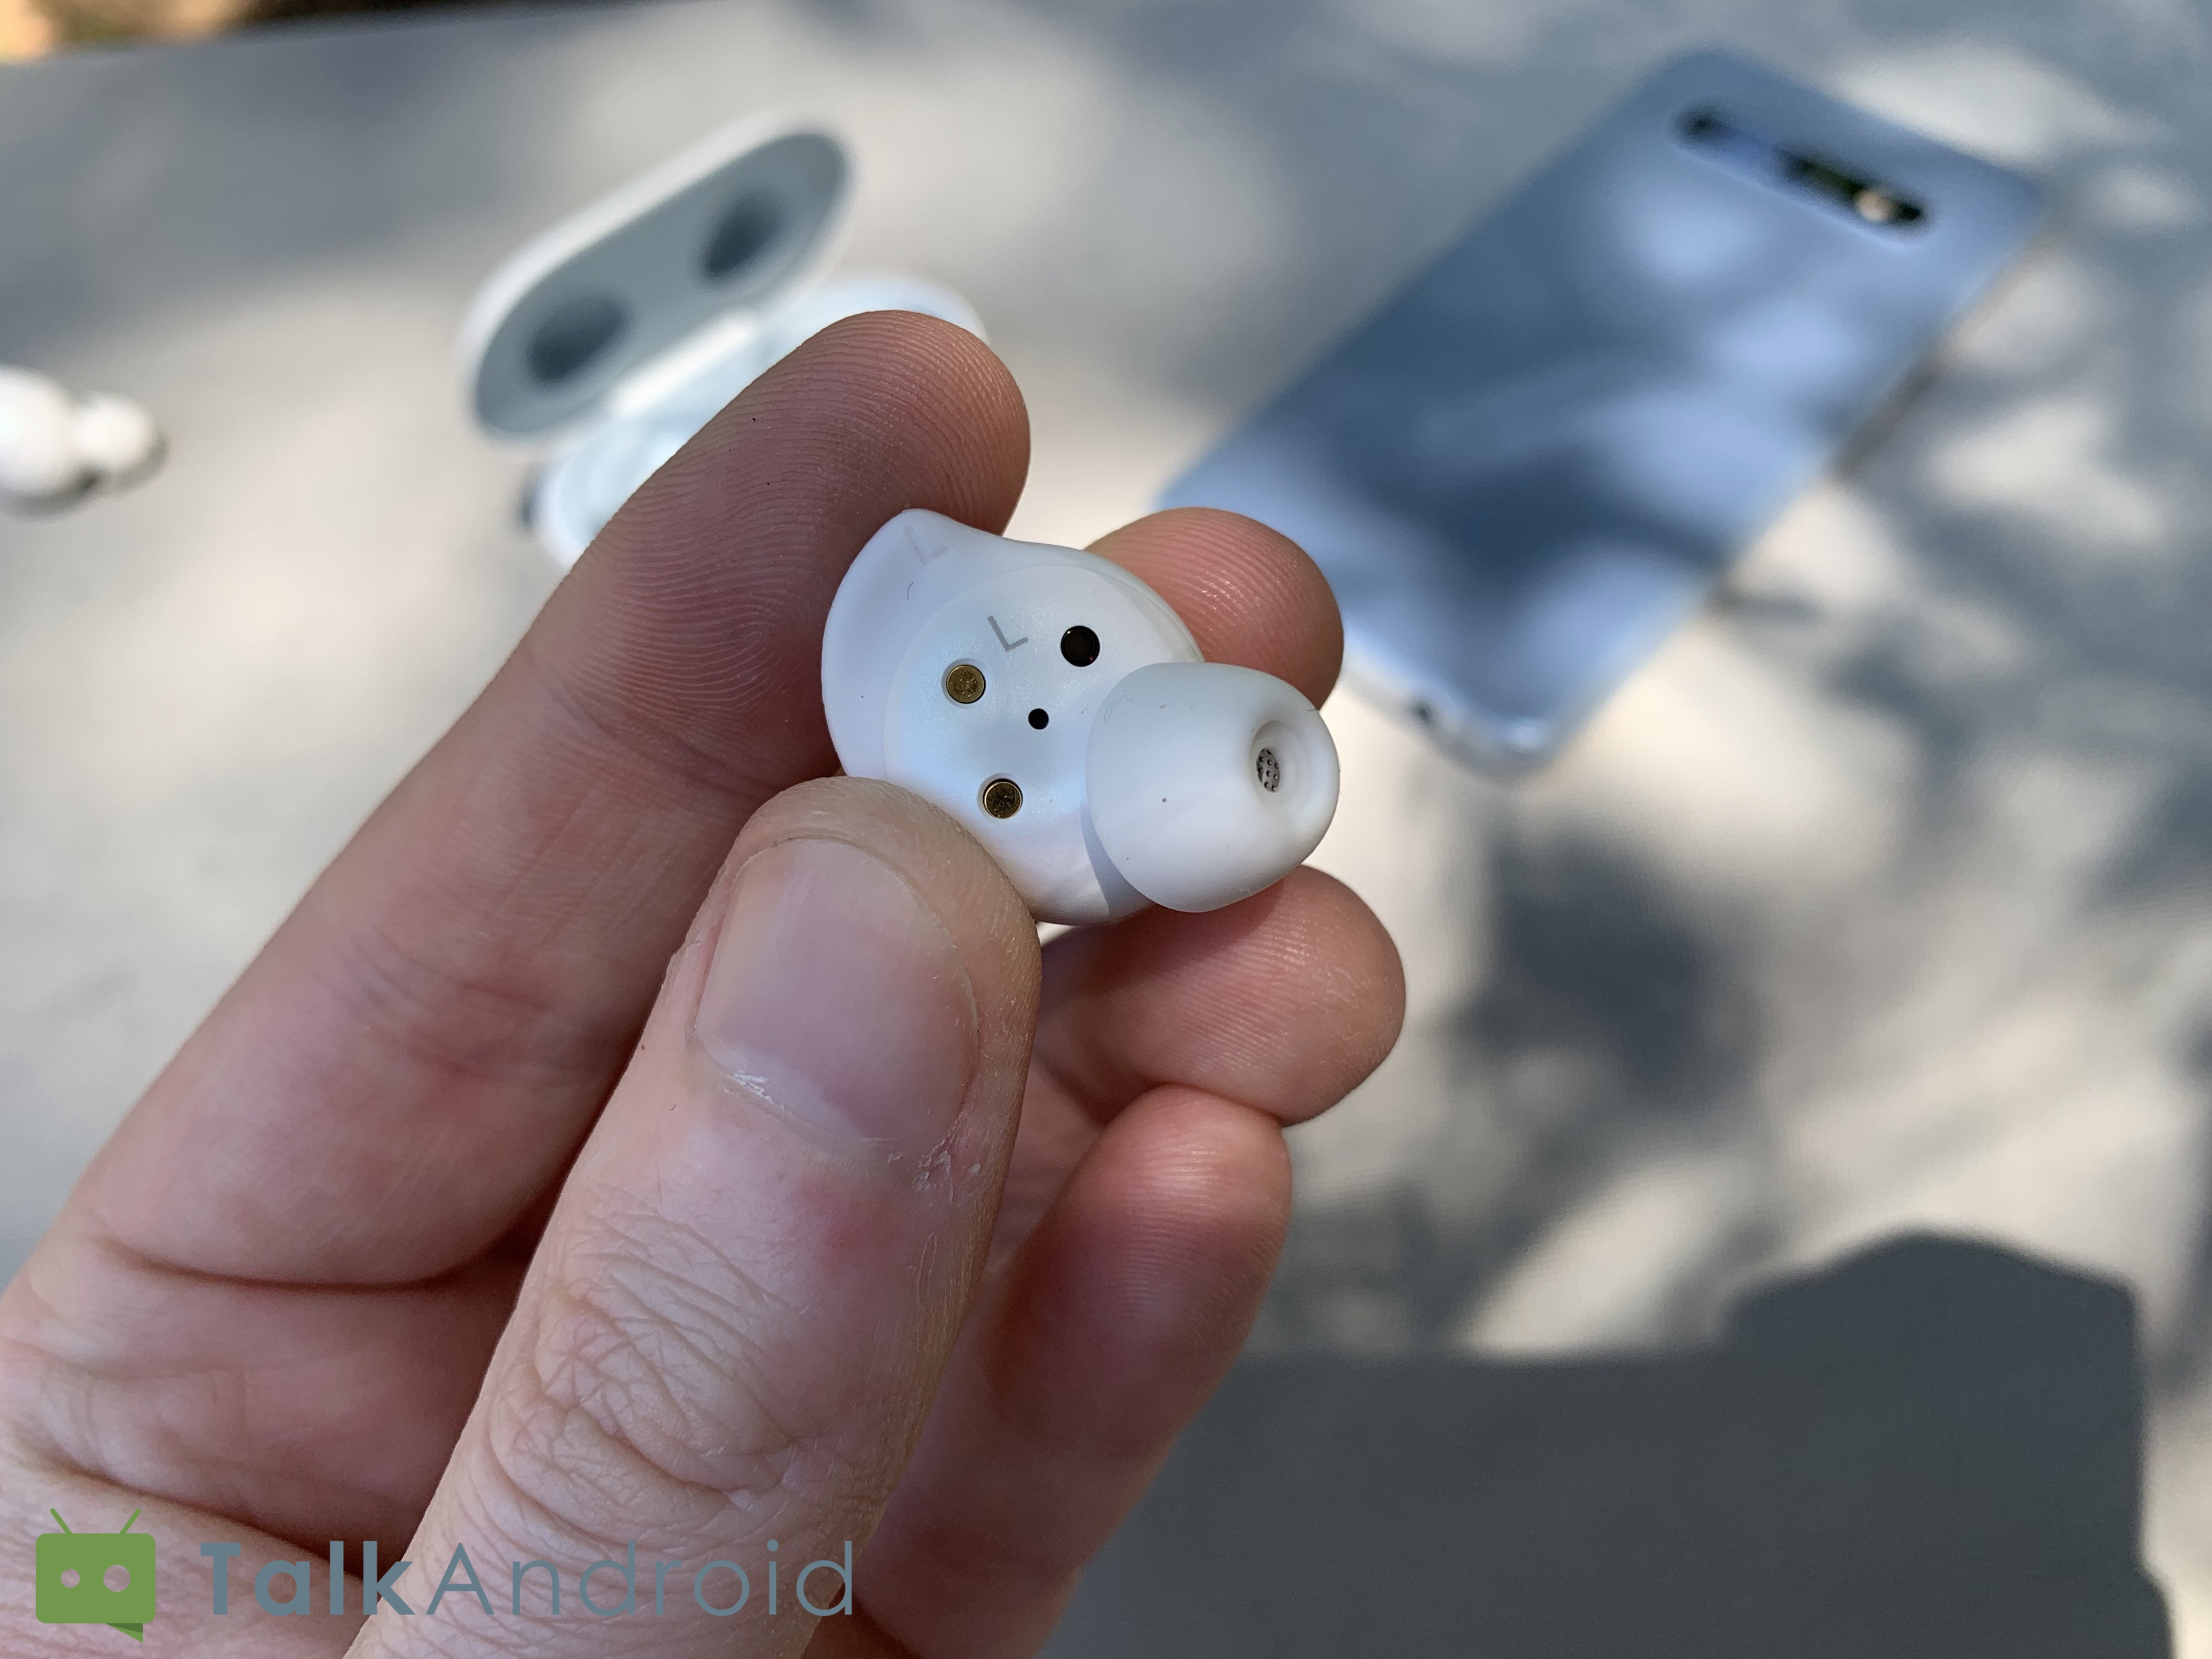 Galaxy Buds review: Android's AirPods? |